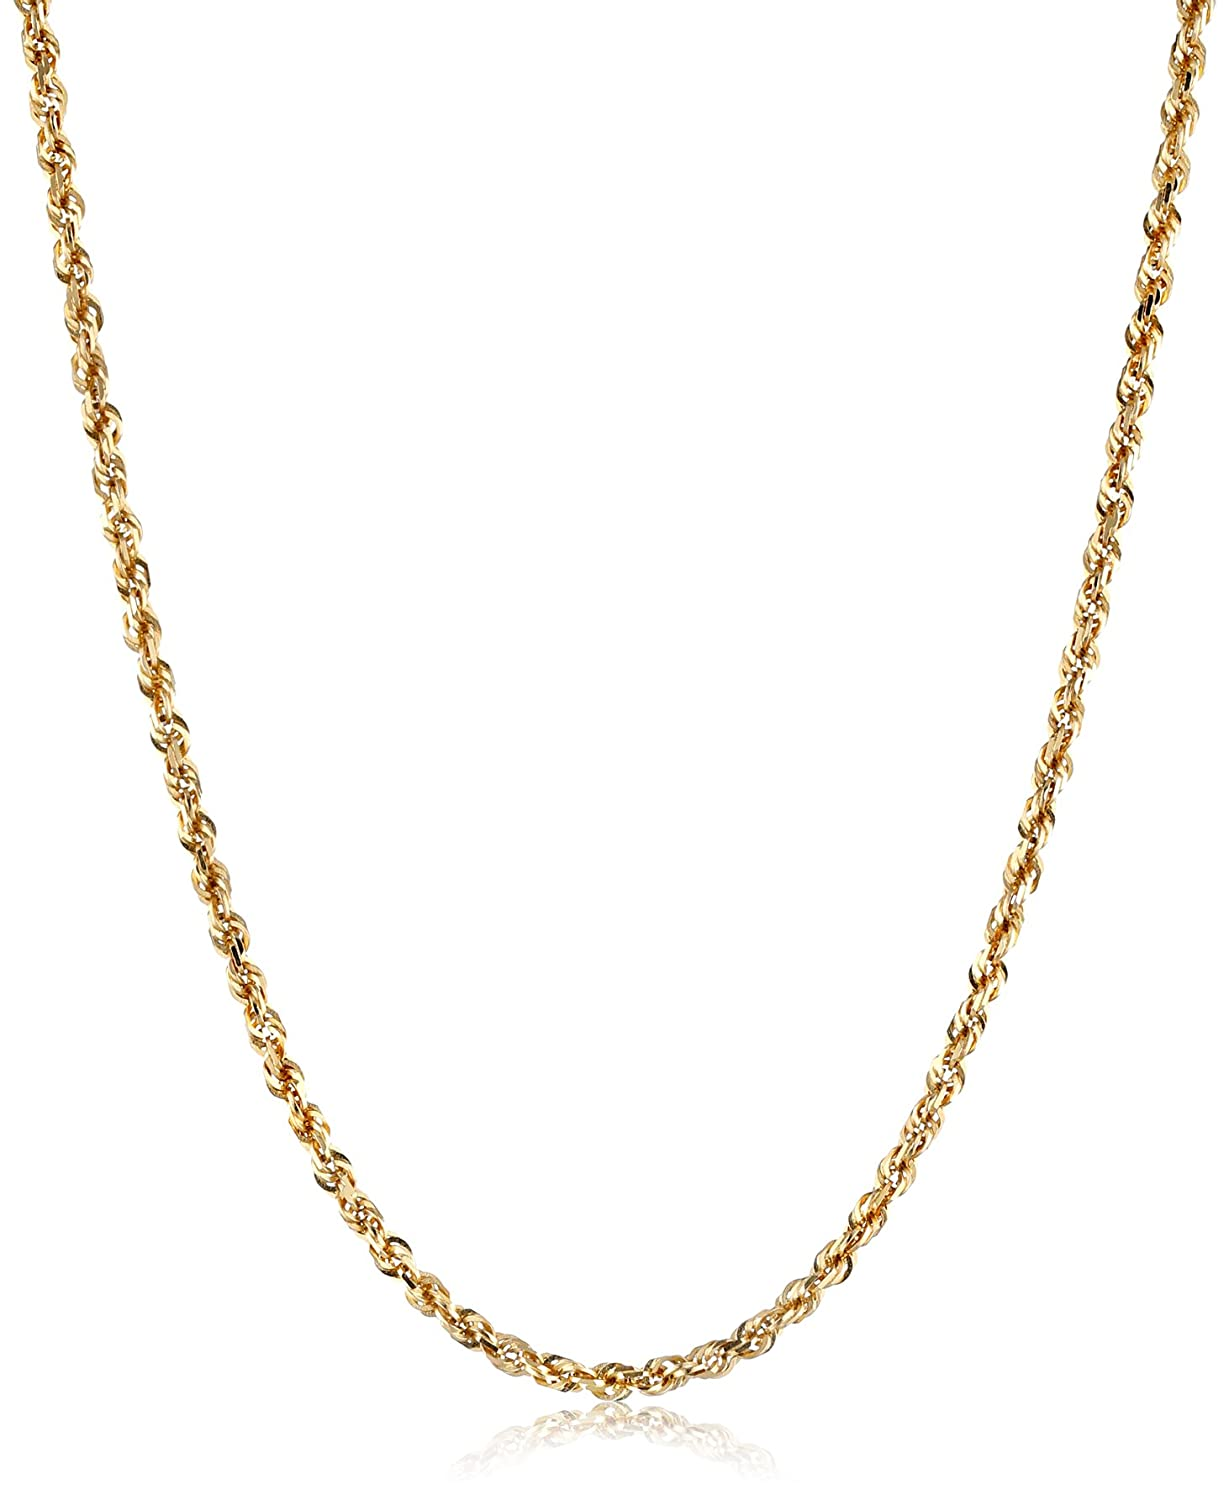 plated rope karat chain com necklace gold s men wide amazon inch dp chains